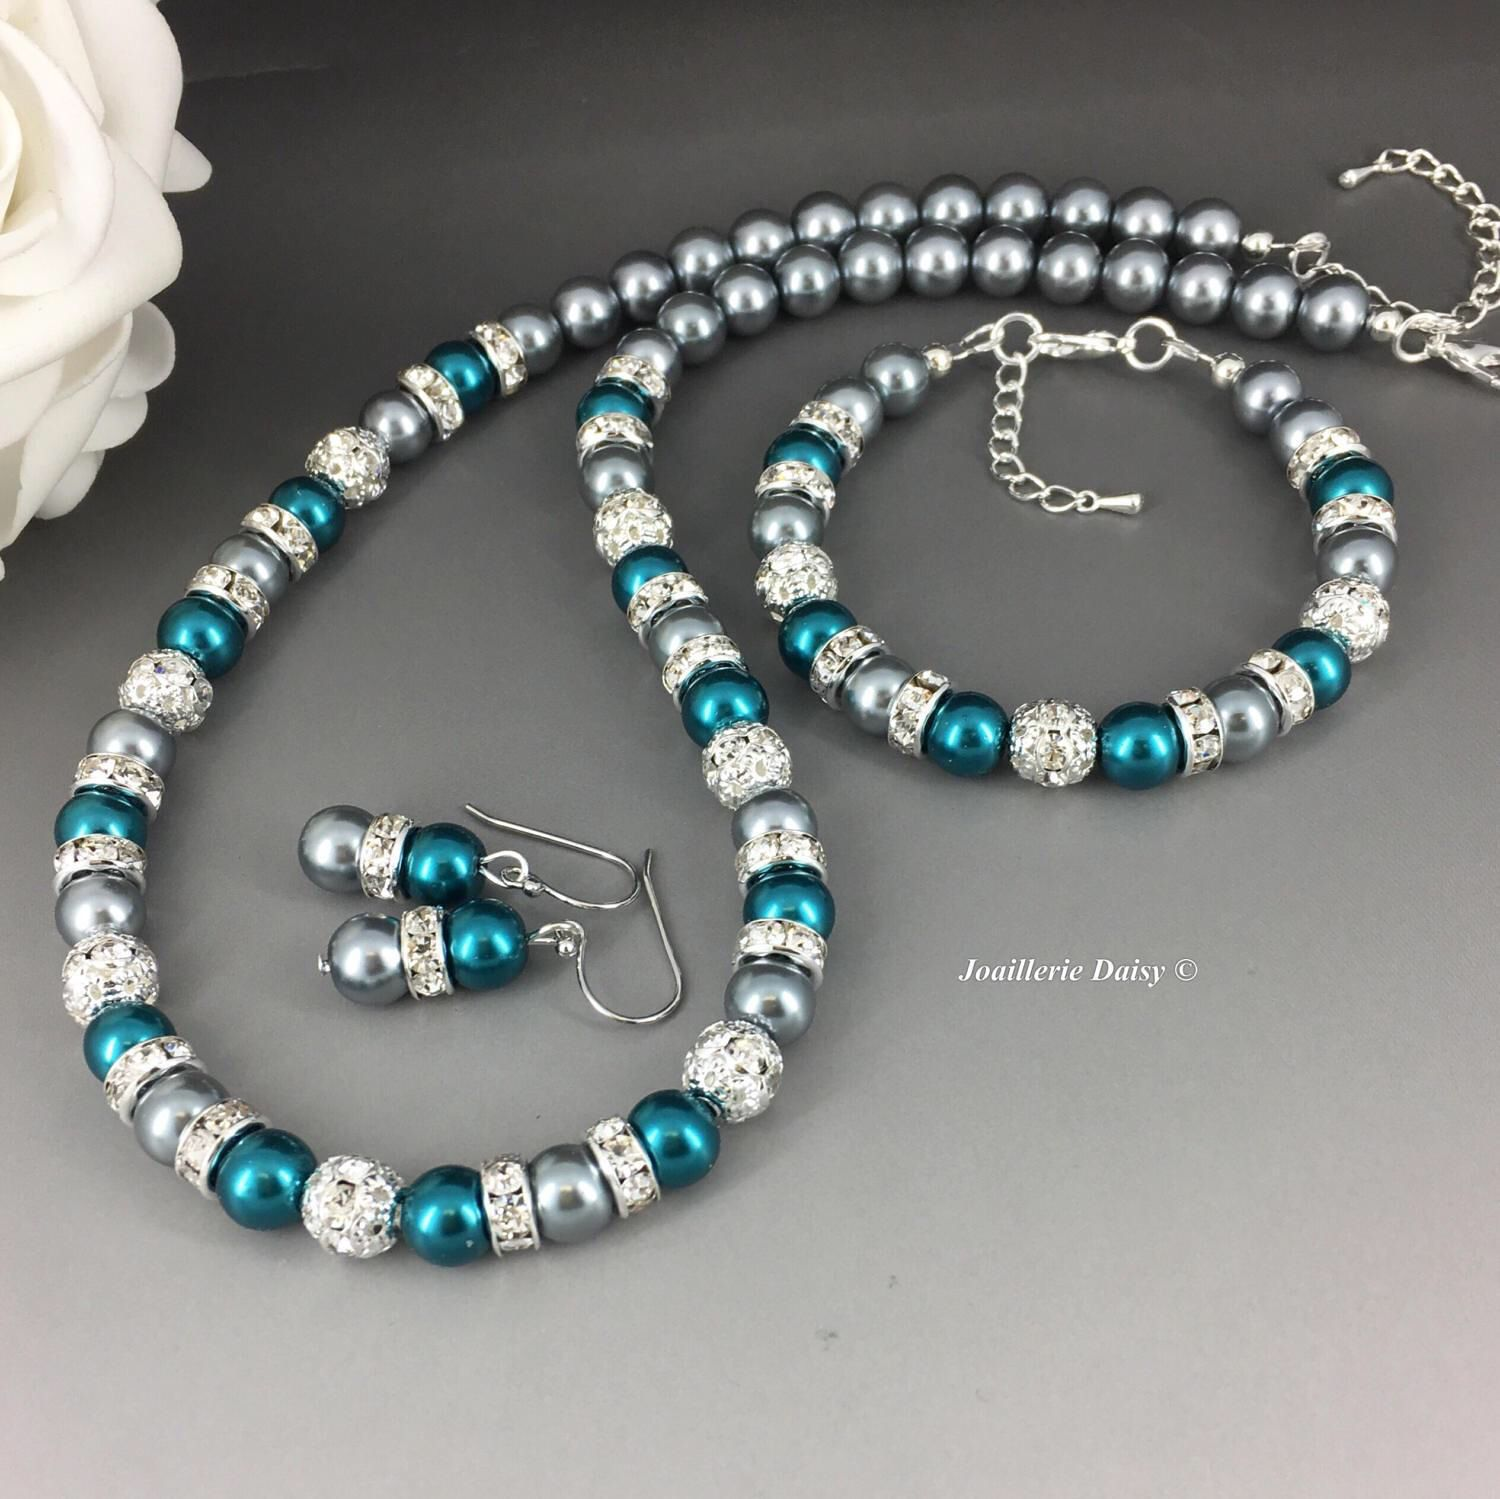 Grey and Teal Necklace Jewelry Set Teal Wedding Bridesmaid